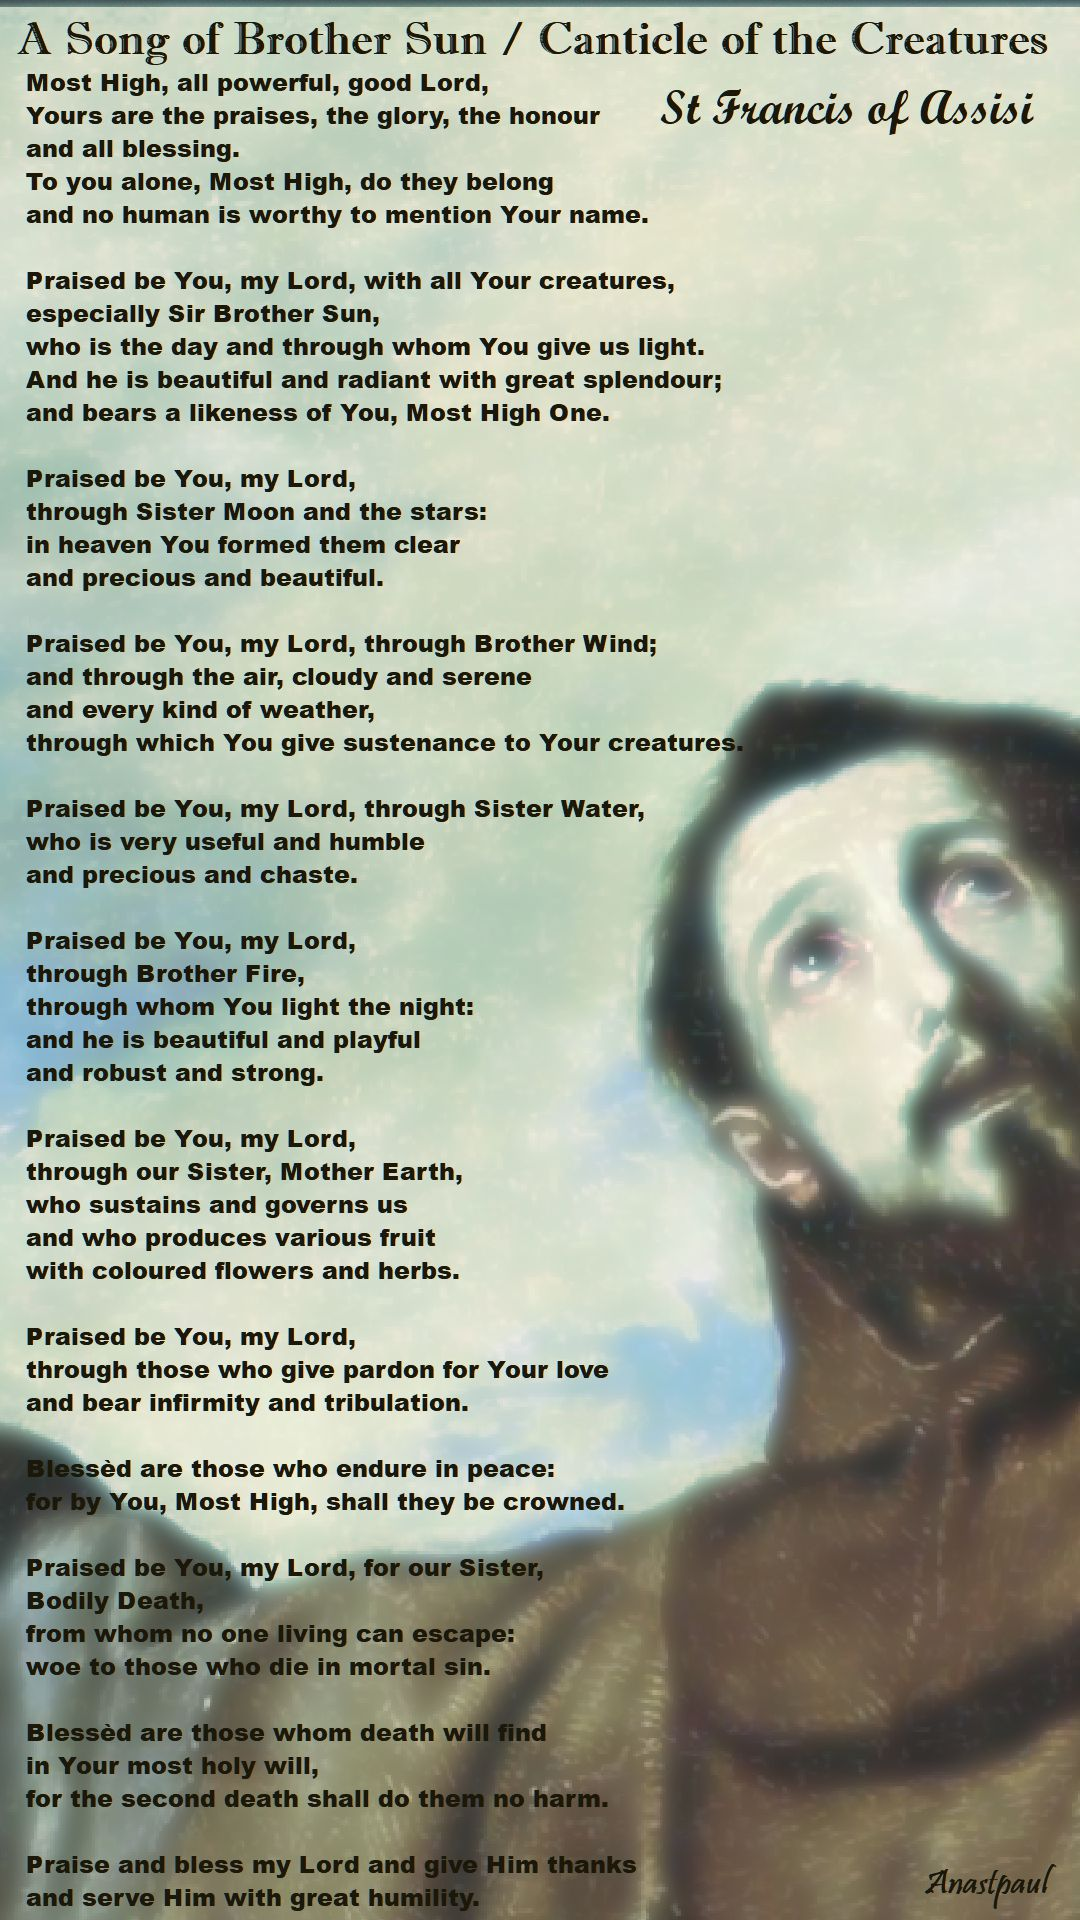 286d0cafef8 Saint Francis of Assisi s Song of Praise – AnaStpaul